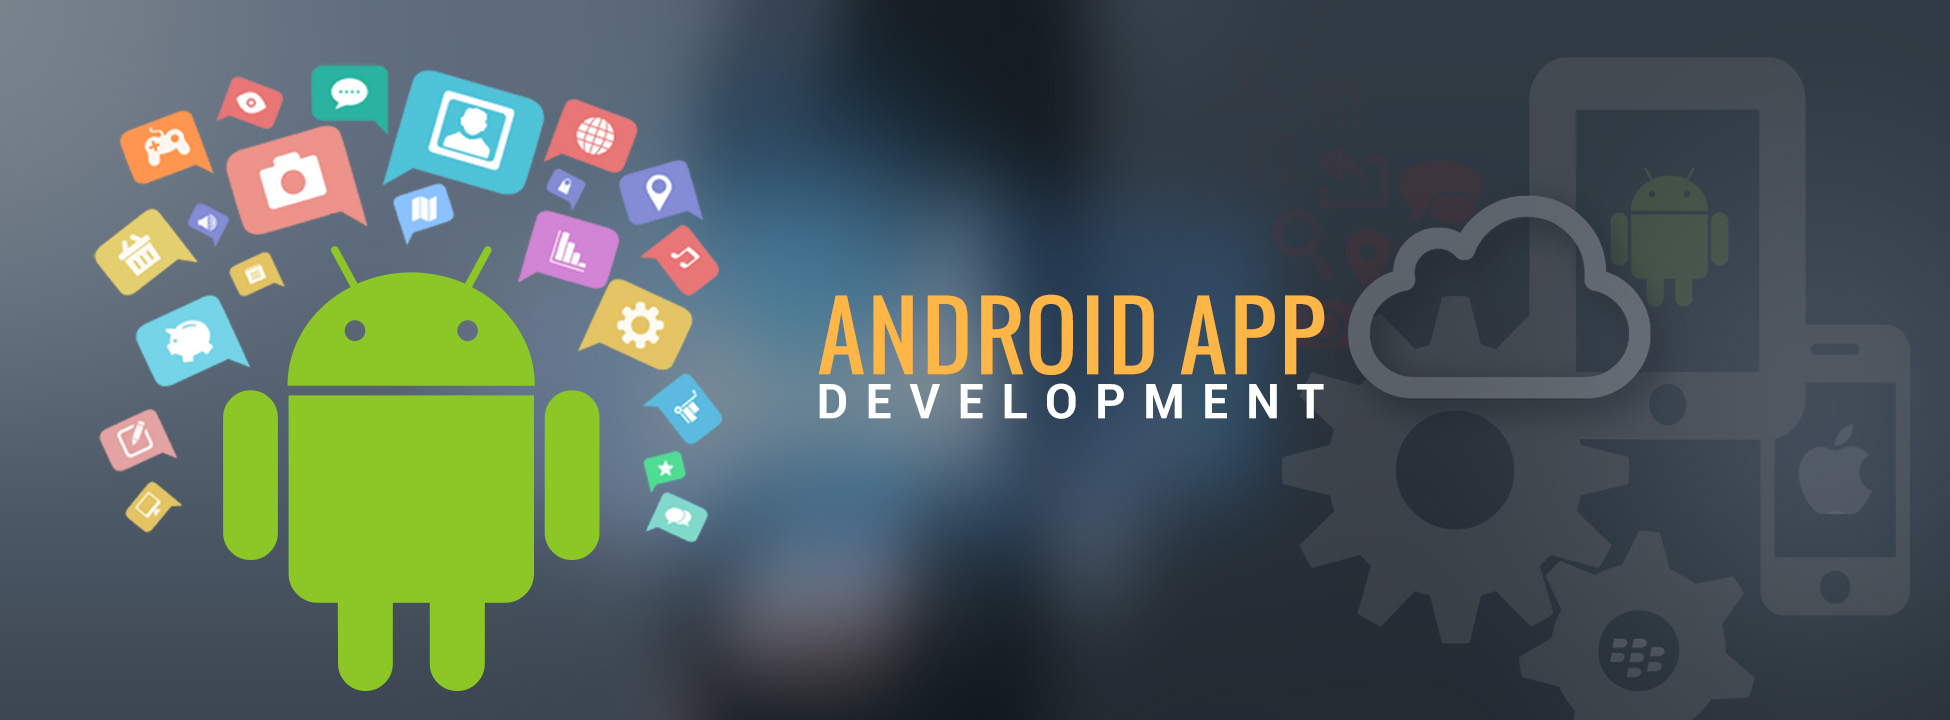 Importance Of Android App Development For Any Business